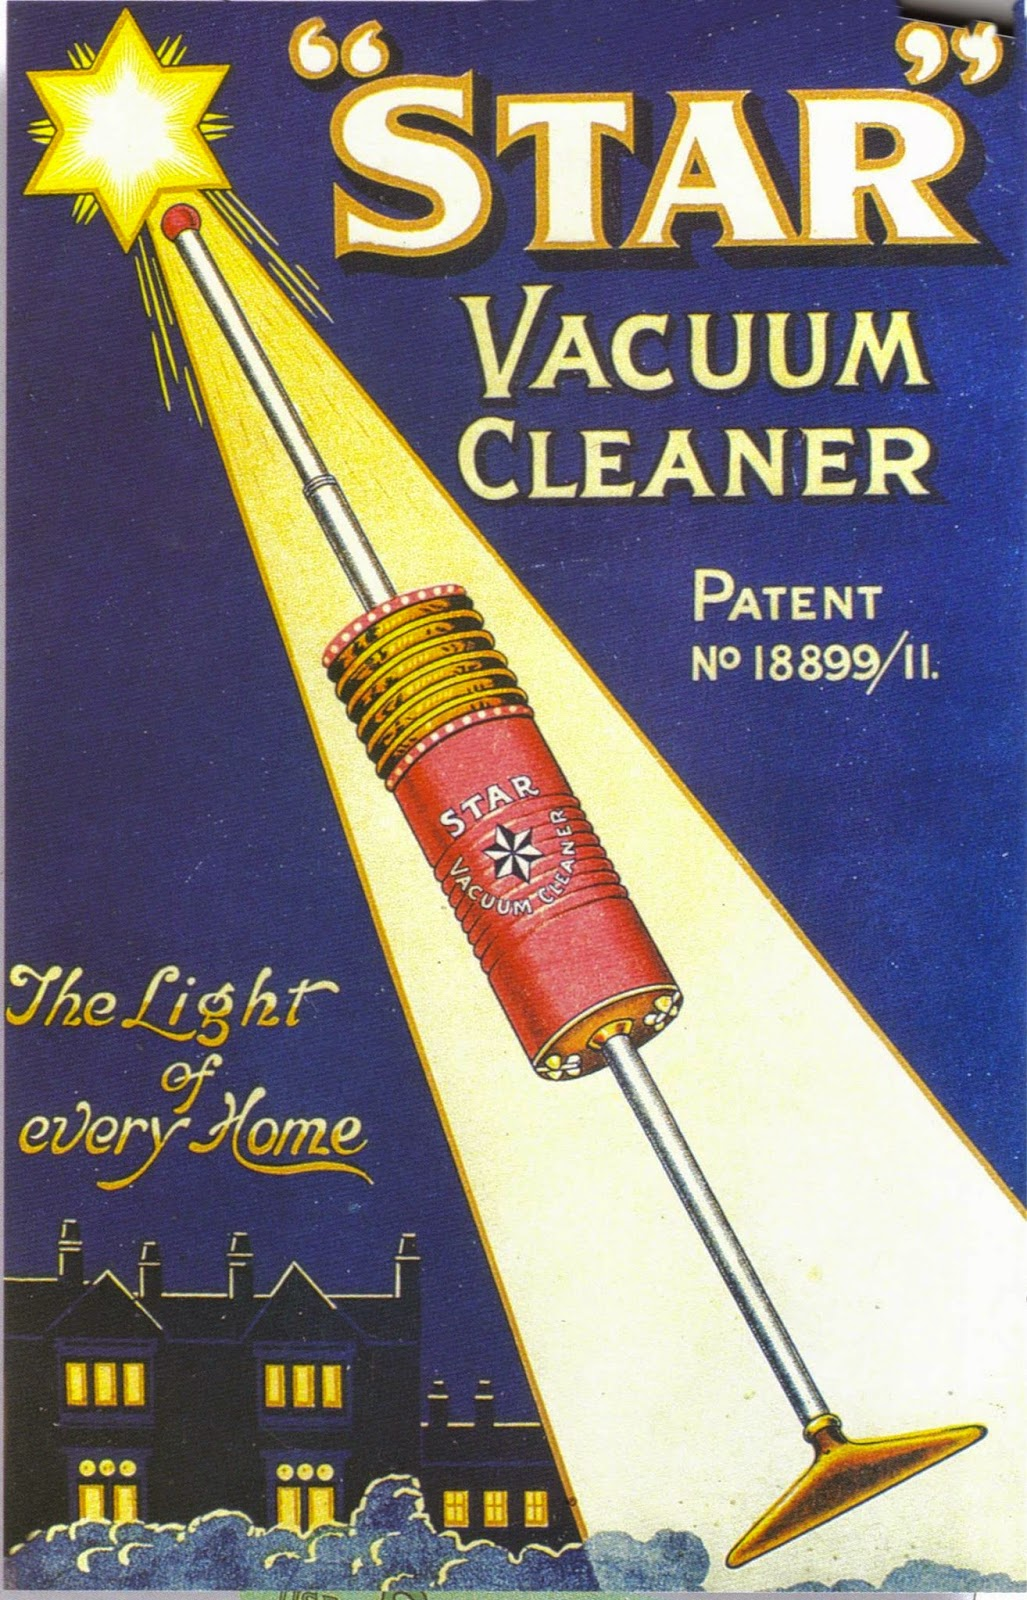 1910 Star Vacuum Cleaner